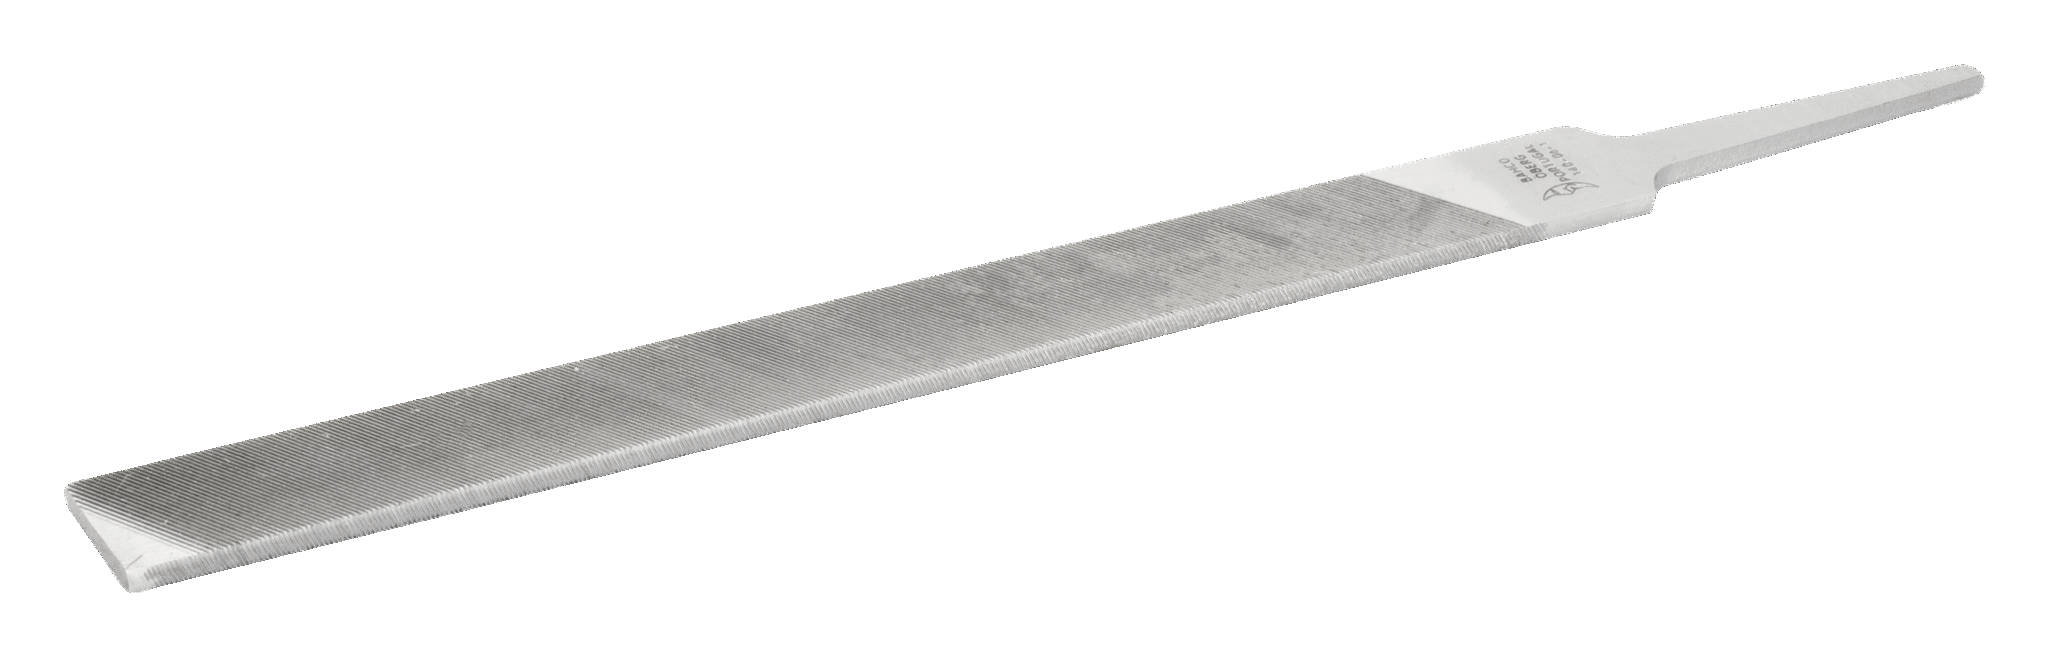 Bahco US Mill File 250mm